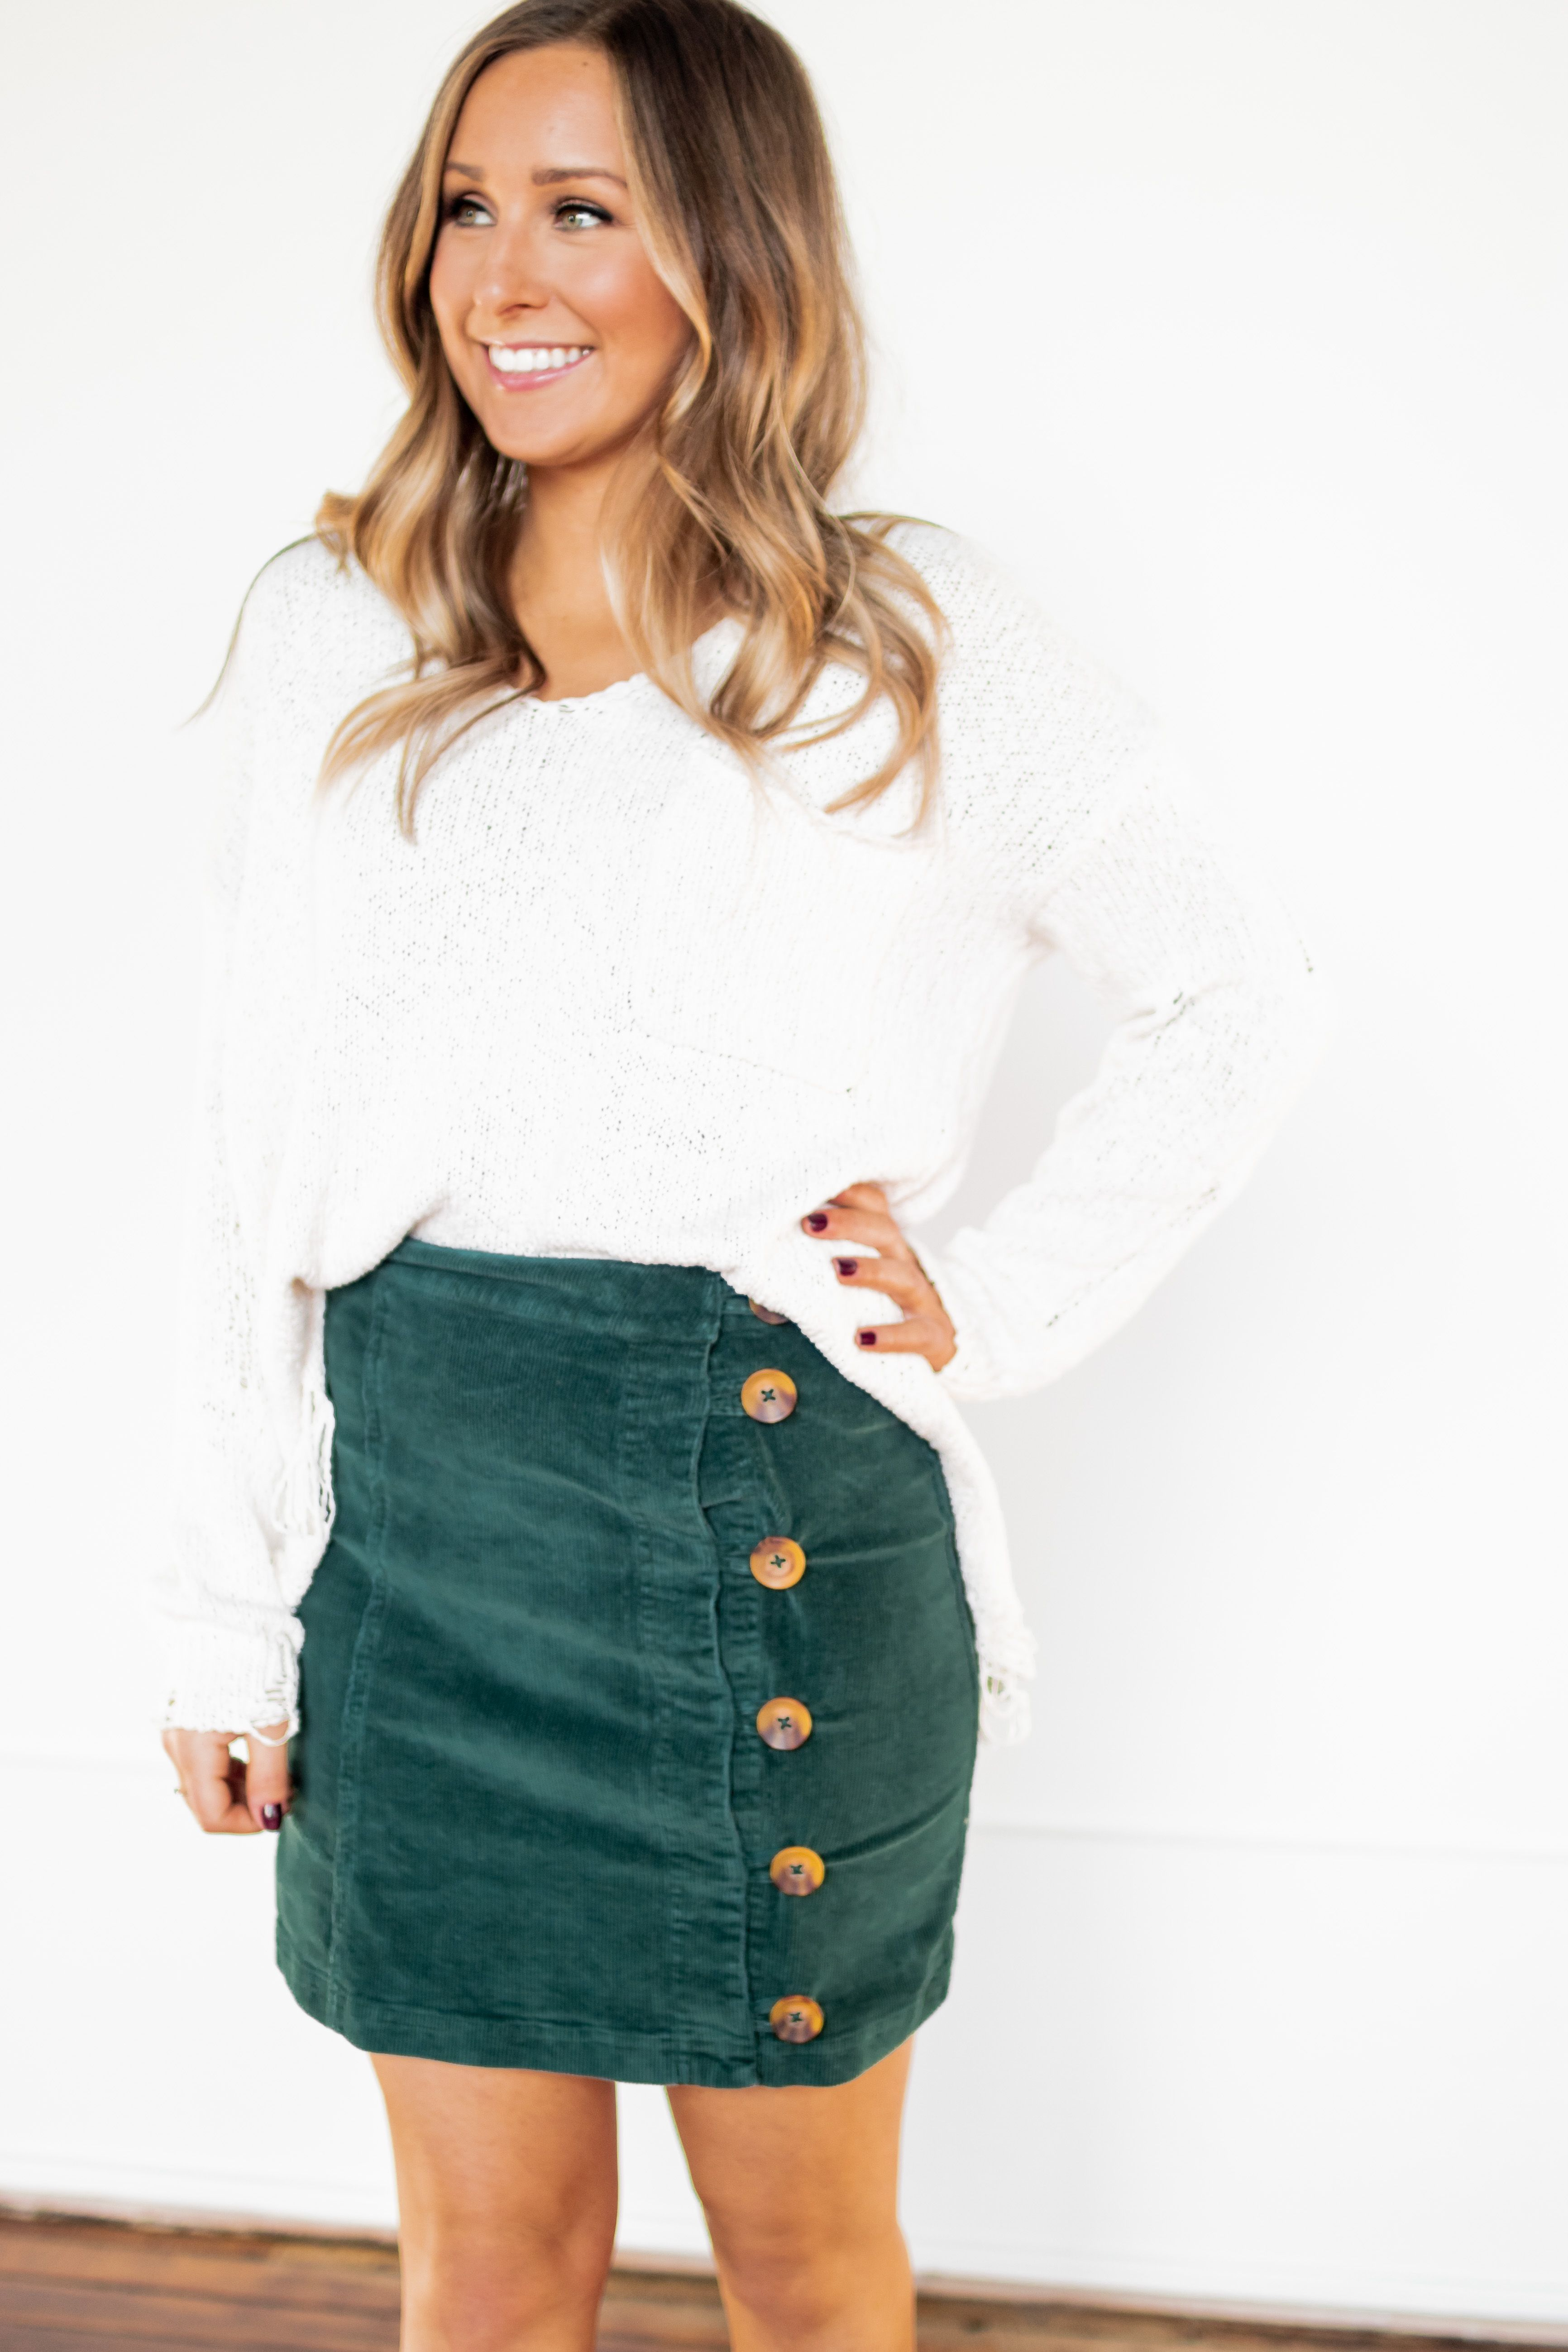 d8ae1bcf04a0 Winter Outfit Ideas   What to Wear for Winter  Layering for Winter  Button  Skirt   Lane 201 Boutique